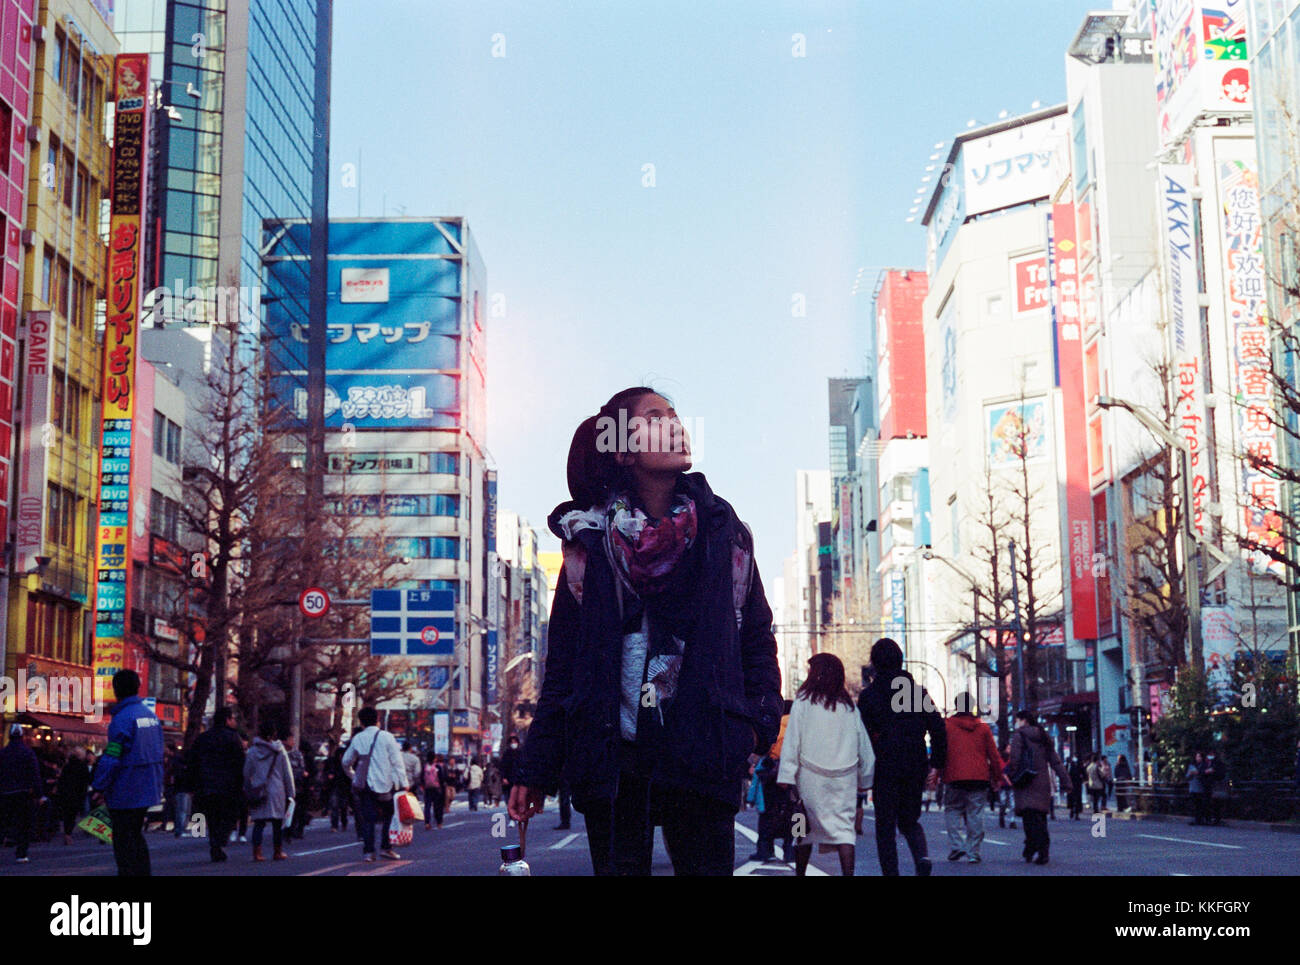 Woman standing in the middle of a busy street in Akihabara, Japan, looking up and sightseeing - Stock Image